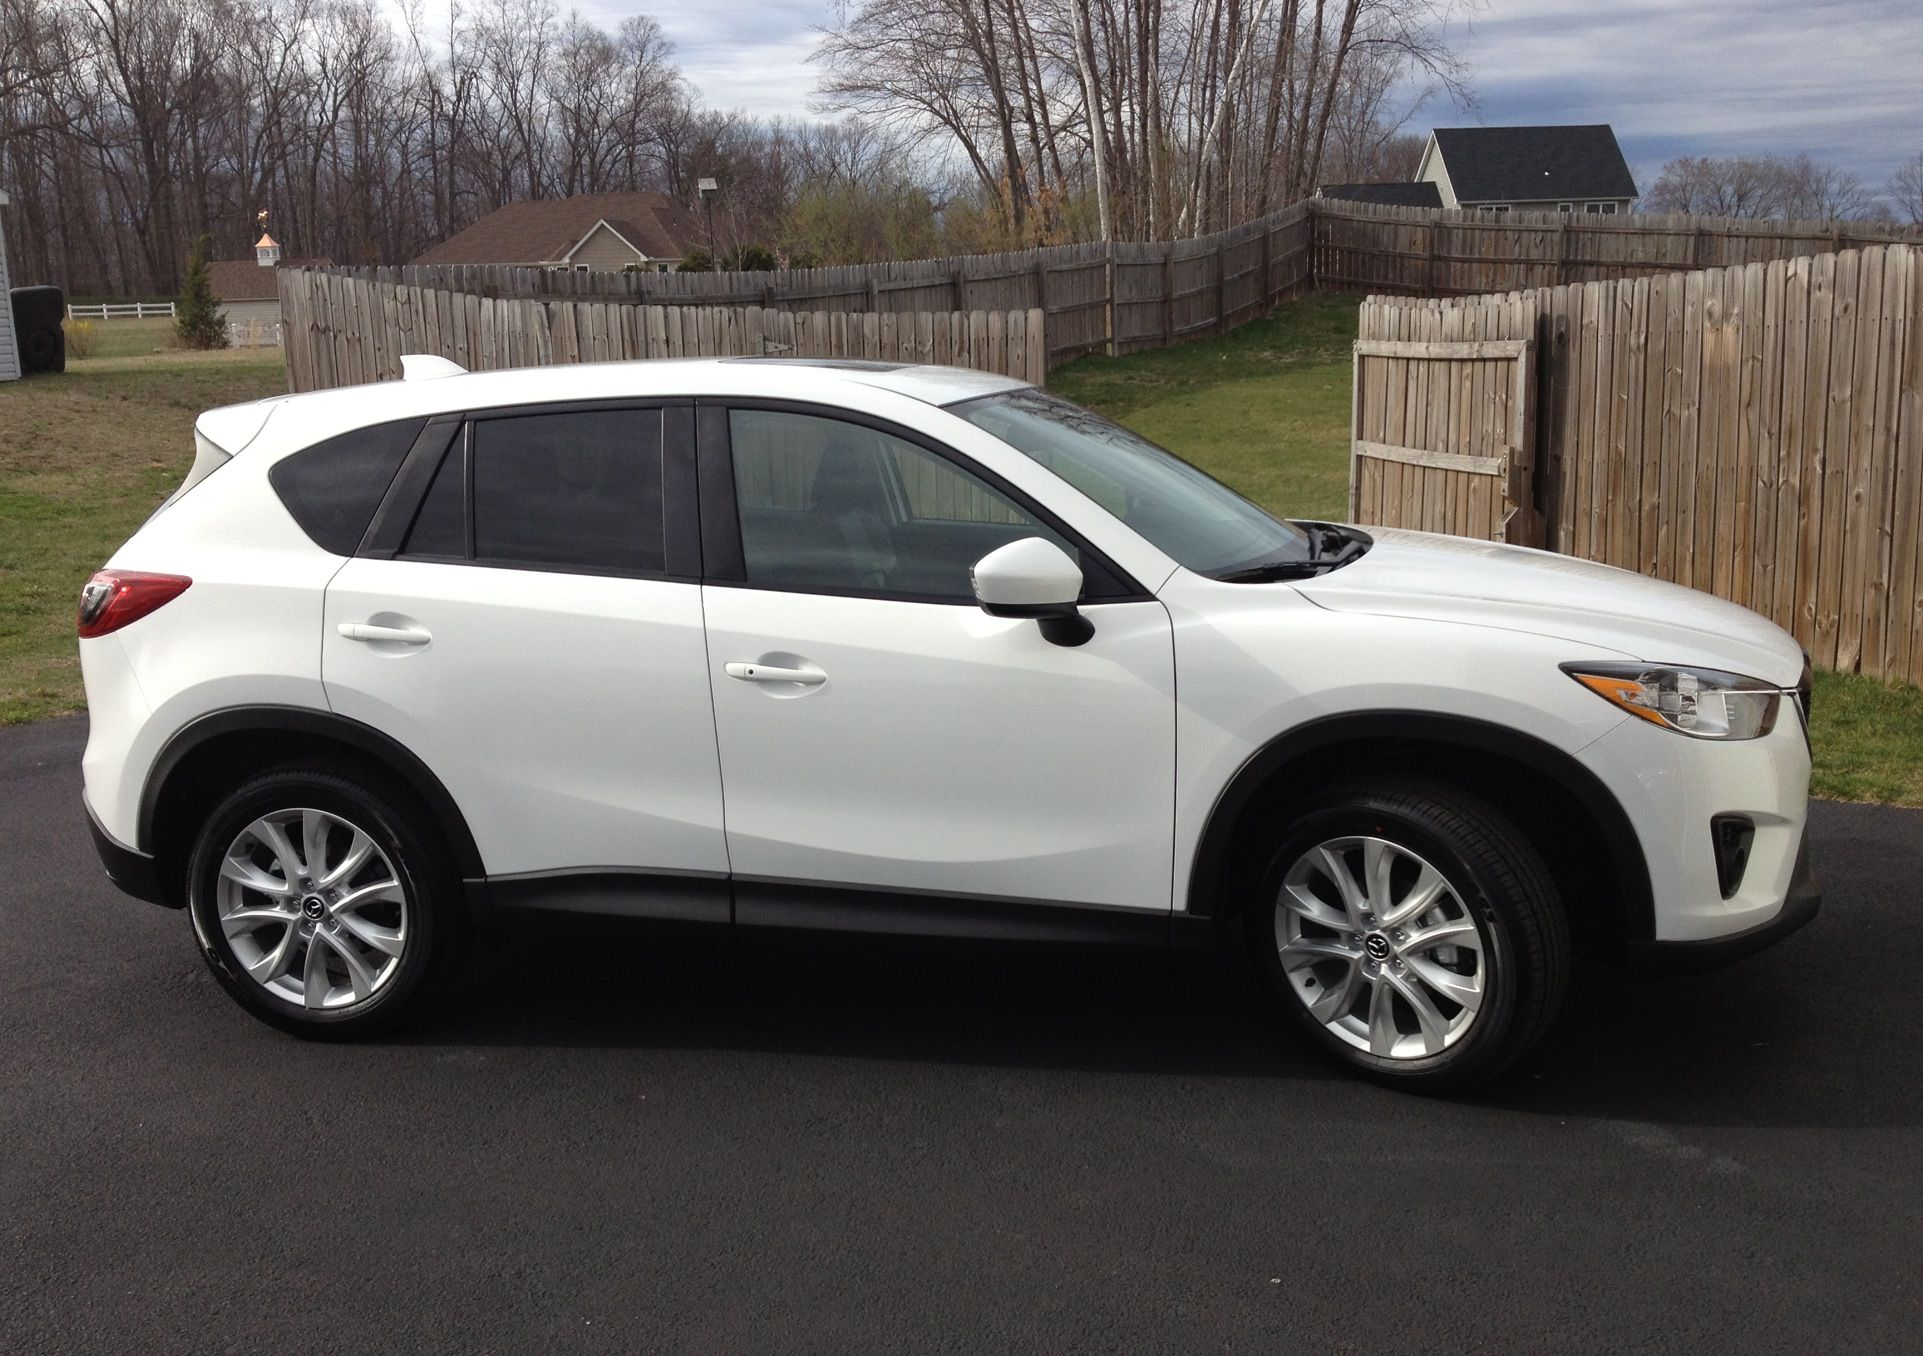 Mazda Cx 5 My Future Car May Not Be My First But Possibly My Second Dream Cars Mom Car Future Car